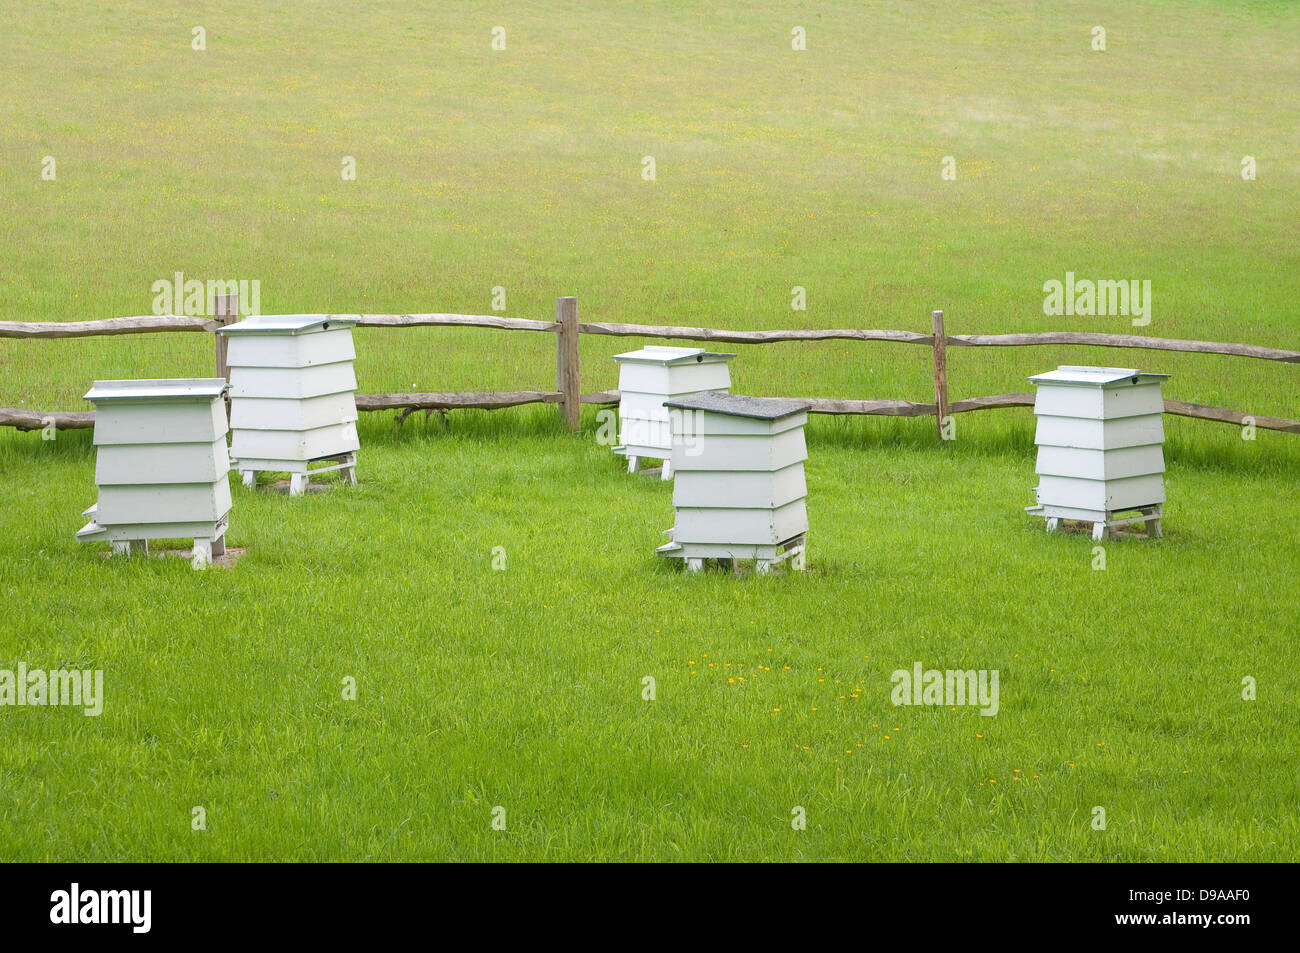 Hives in green meadow. West Sussex, UK. - Stock Image